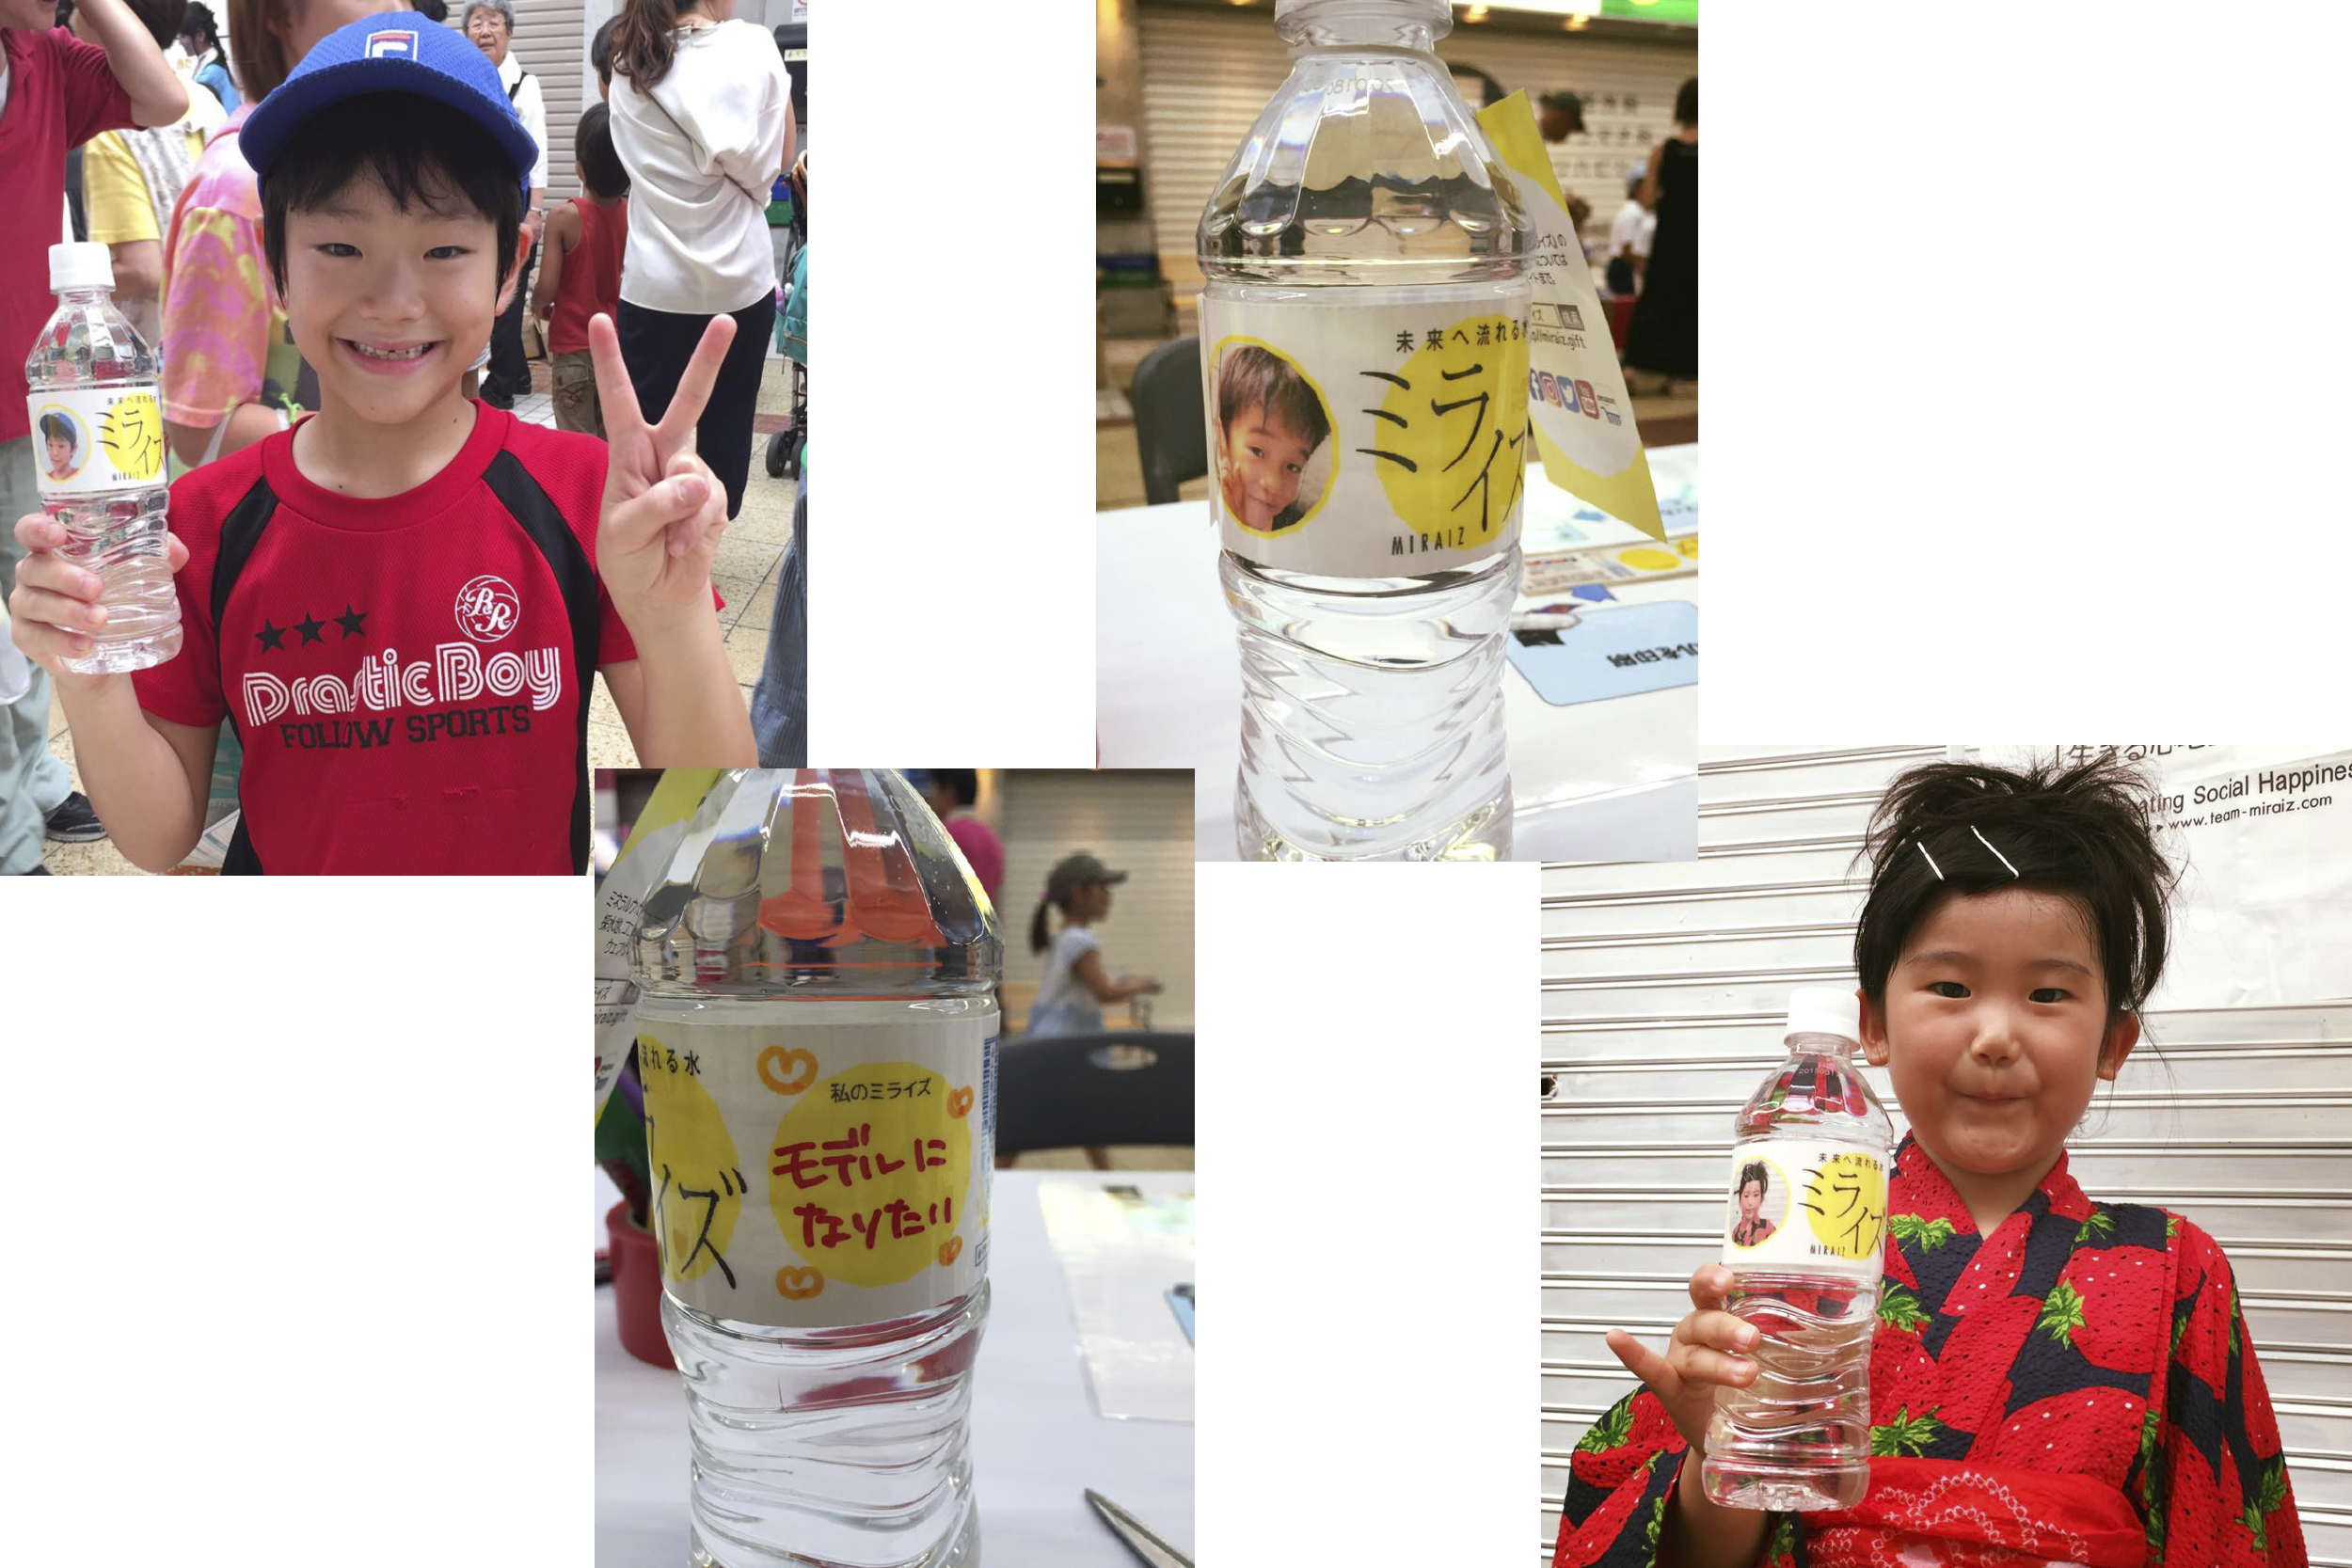 Promotion campaign: What's your future?   Miraiz placed the workshop booth at the summer festival in Tachibana, Japan. Attendees at the festivals get to make their customized bottle labels with their pictures on them and write down what/where they want to be in 10 years. This campaign was a big success to expand not only the name of the brand but also the concept of the water.